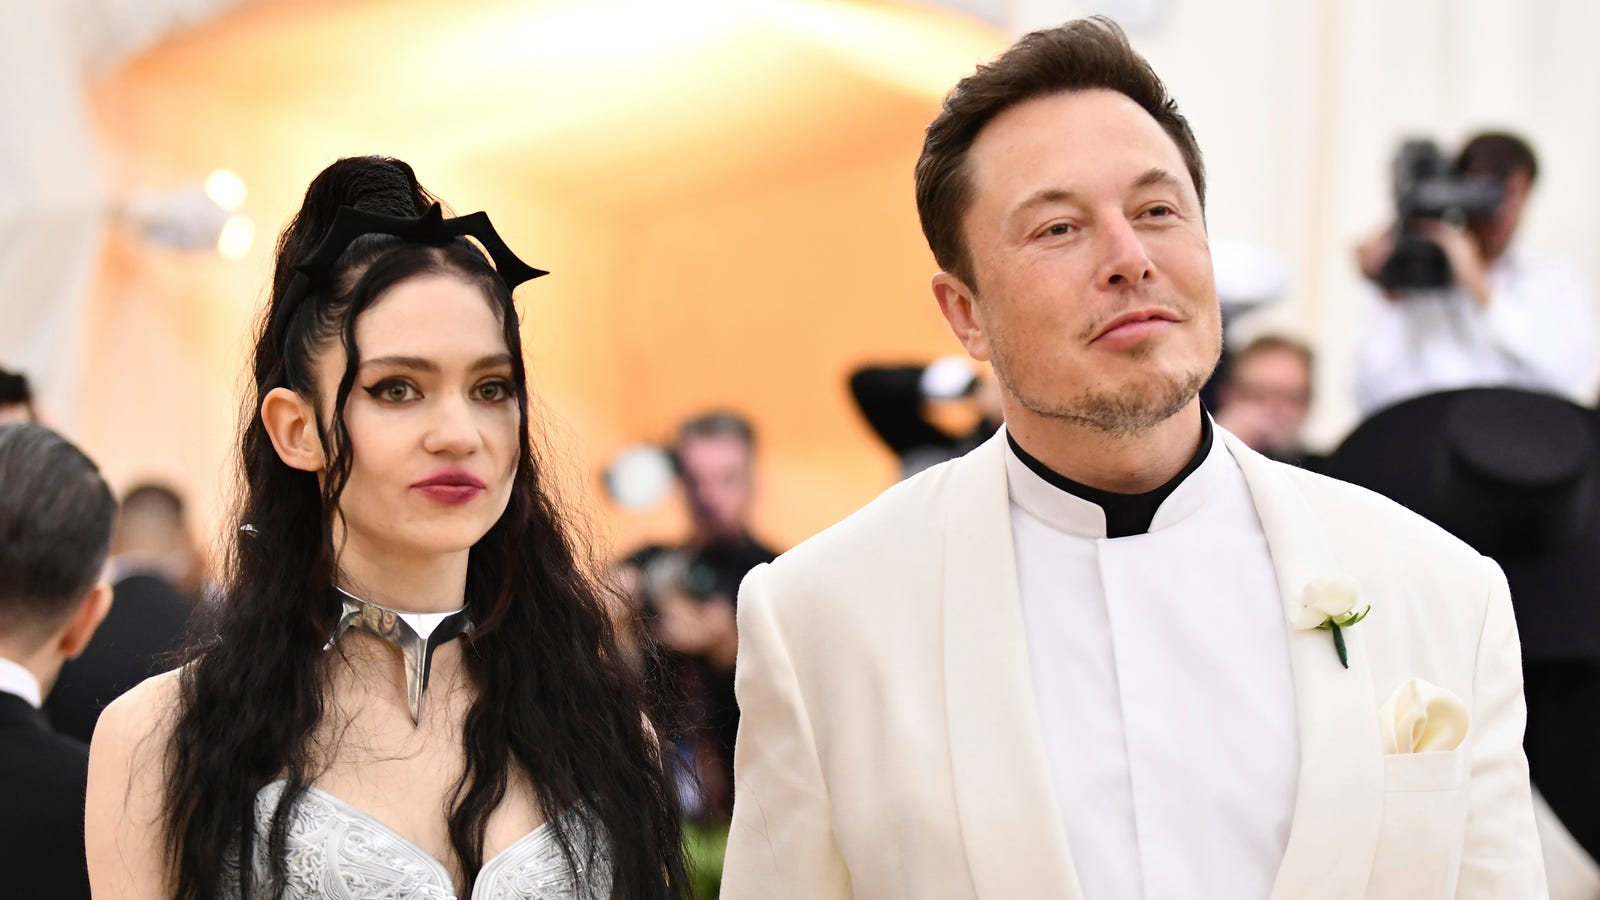 photo image Elon Musk Reduces Twitter Use, Specifically by Unfollowing Grimes